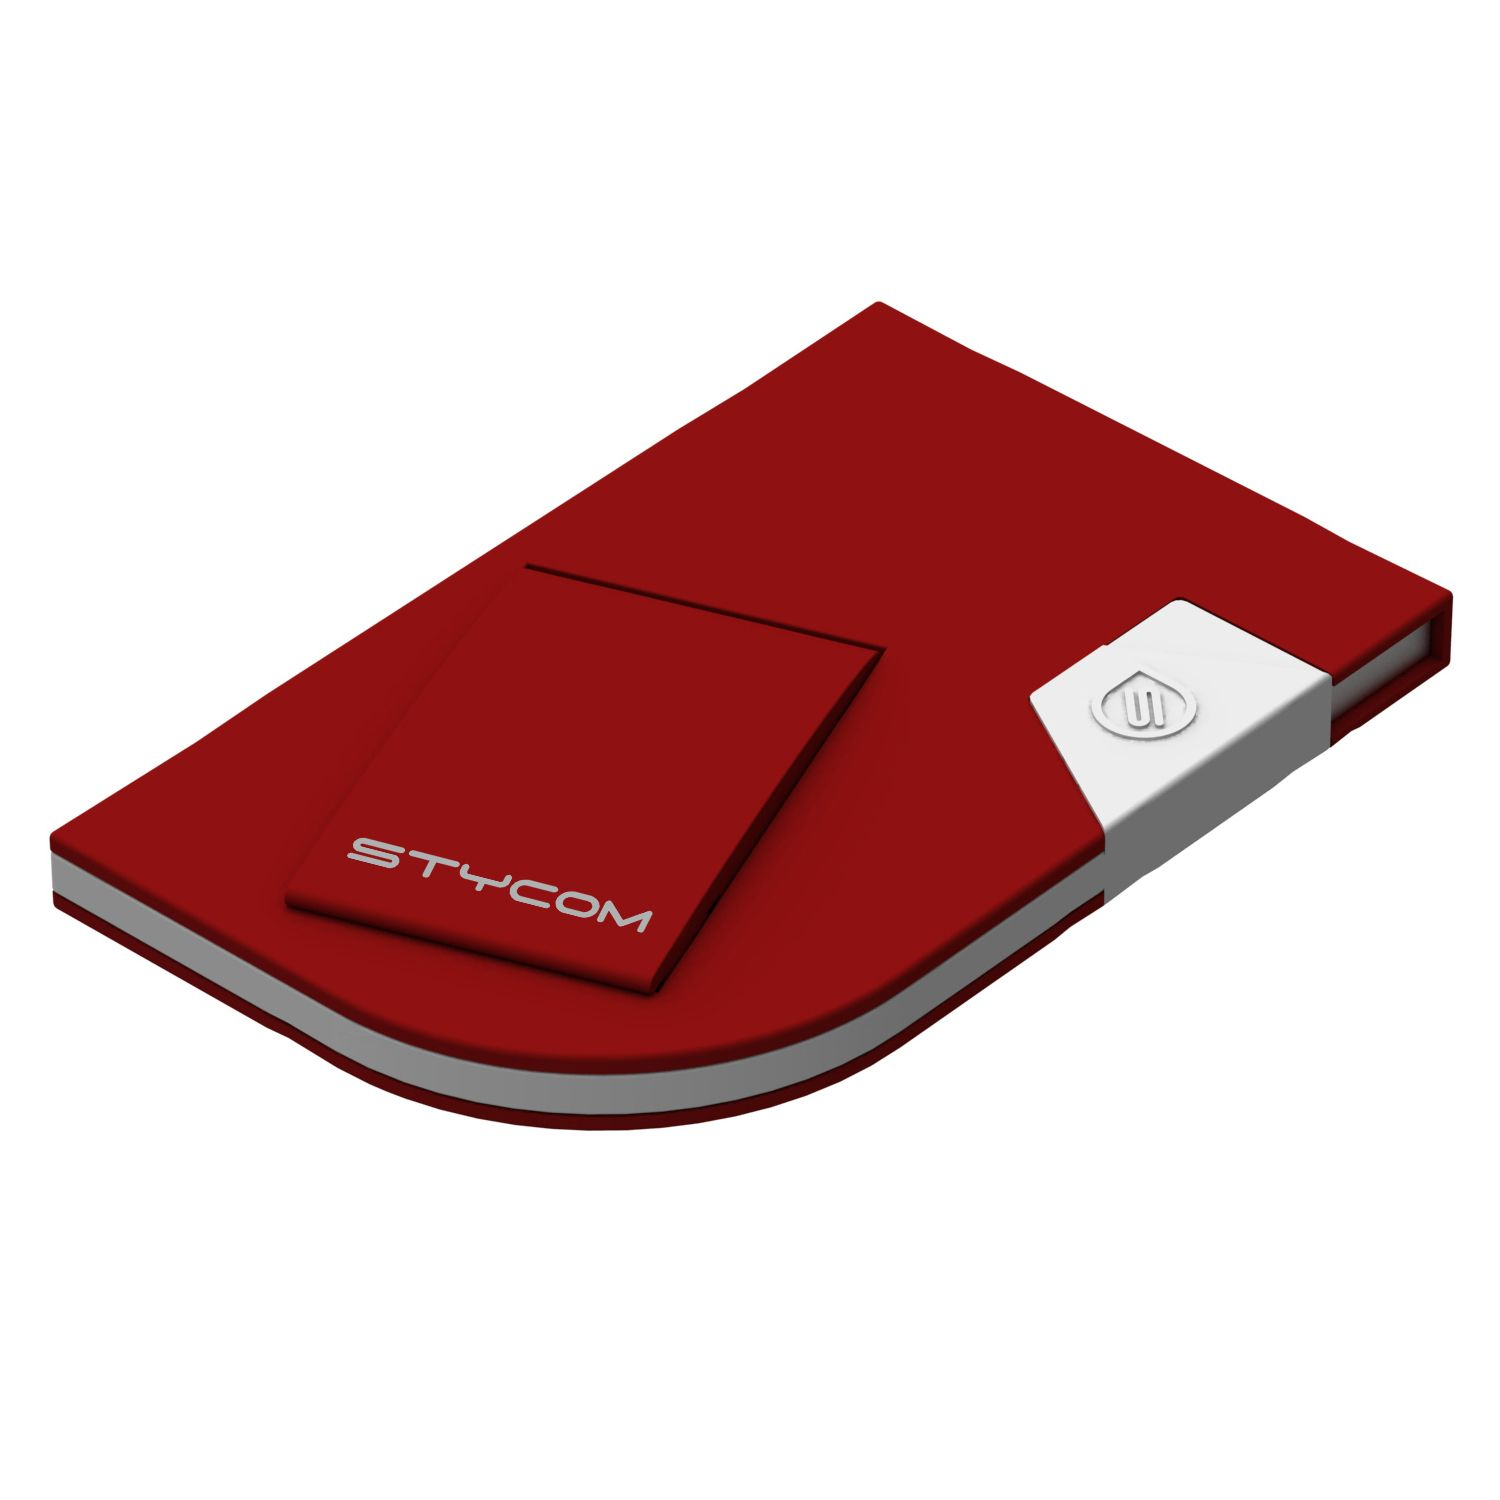 DockCard ultra slim travel docking station for iPod touch, iPhone 3/3GS and iPhone 4/4S - Red